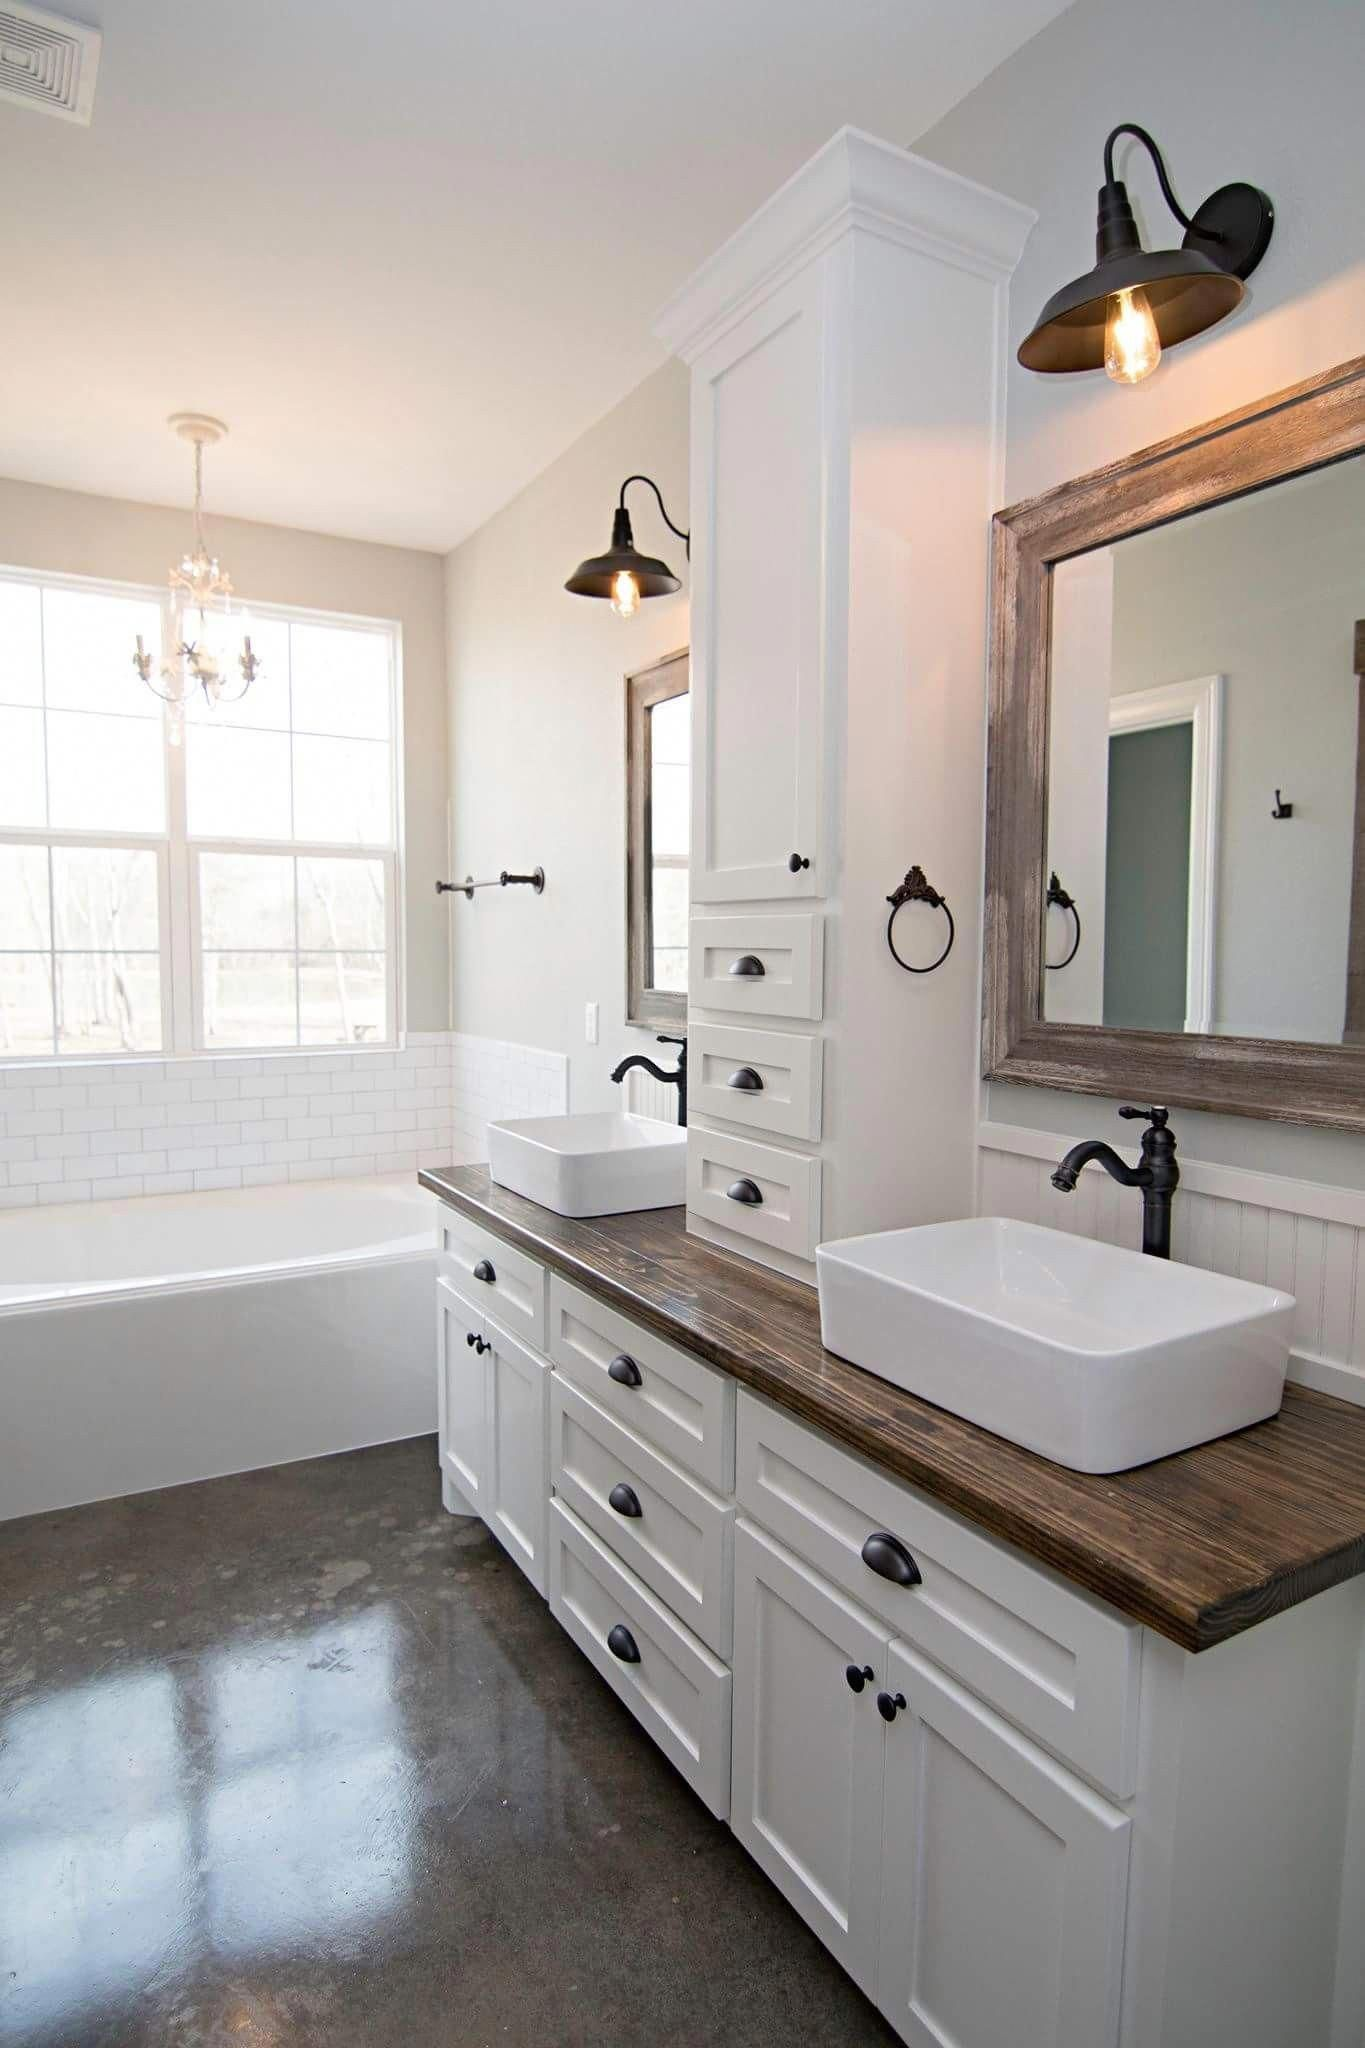 No Middle Drawers A Different Set Of Light Fixtures And A Different Style Tub Modernh Master Bathroom Layout Bathroom Layout Bathroom Remodel Master